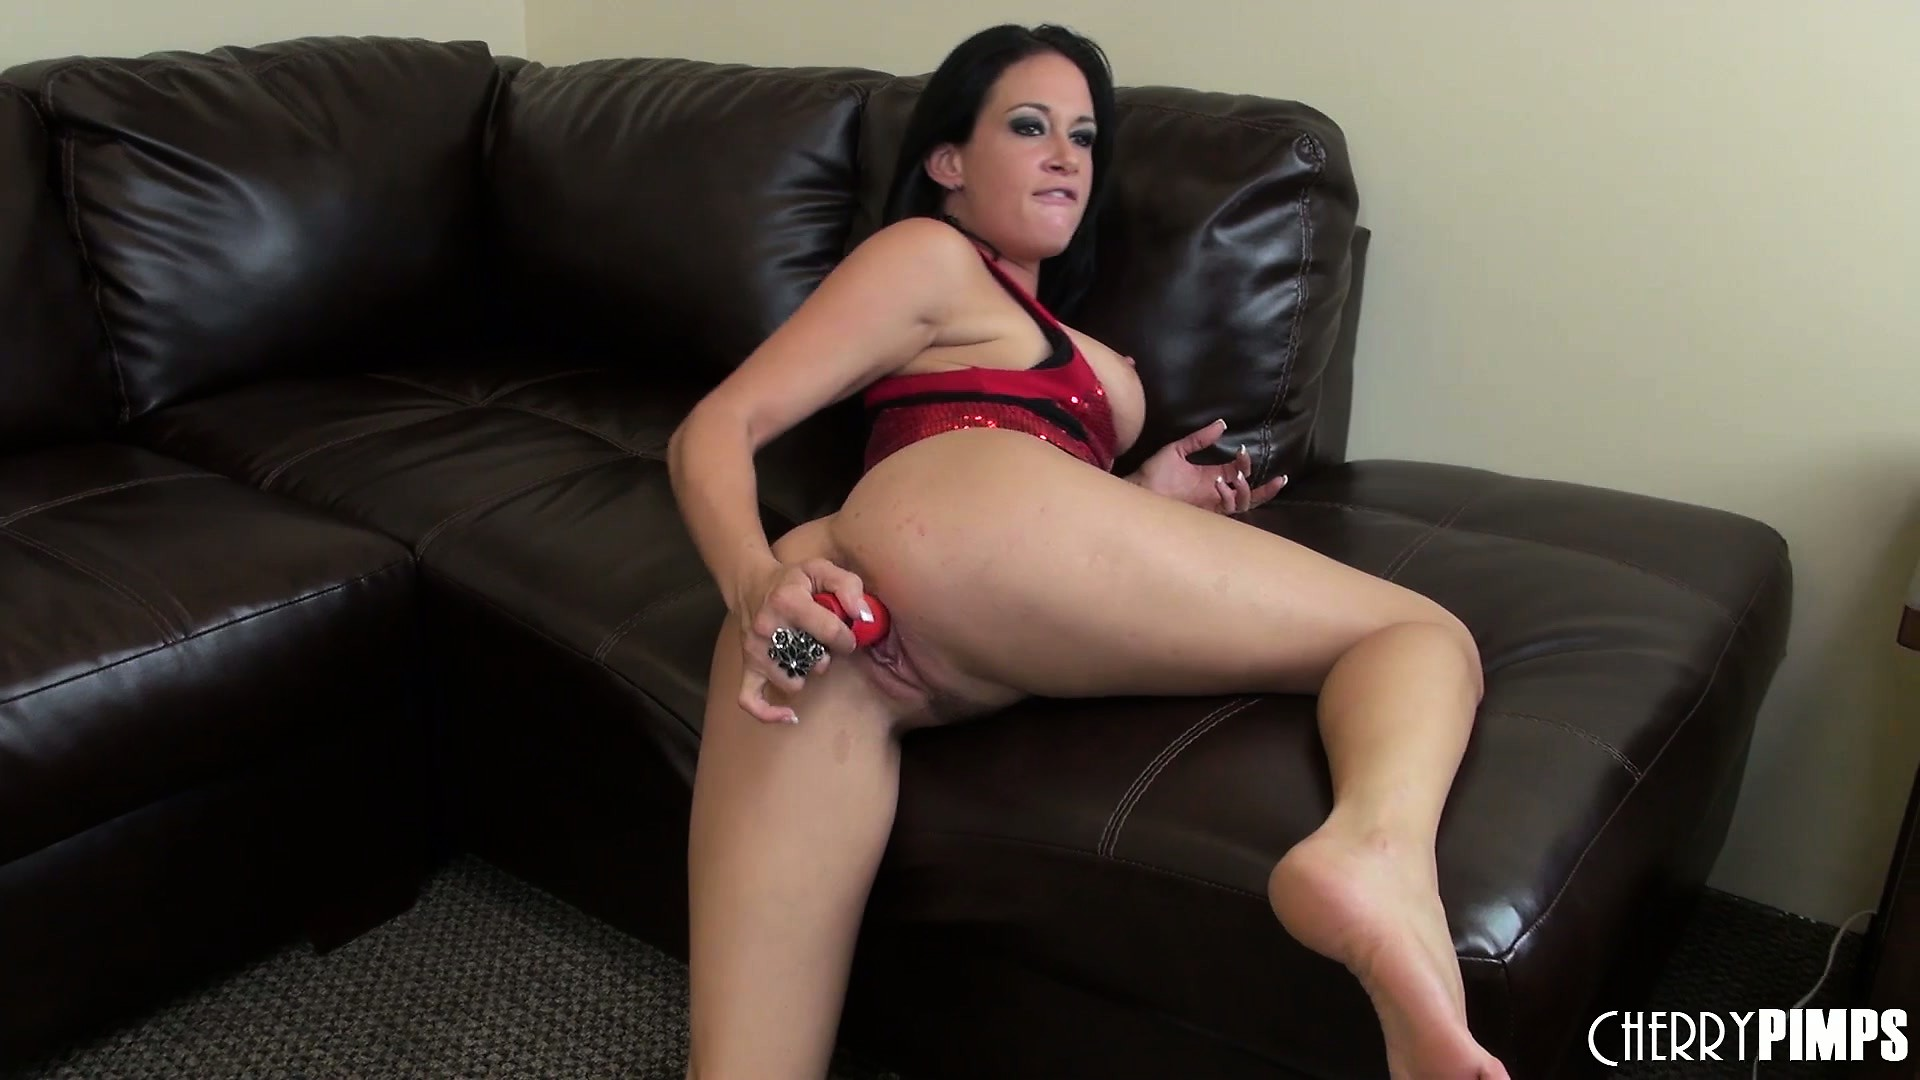 Porno Video of Tory Lane, A Stacked Brunette With A Spicy Ass, Reveals Her Passion For Sex Toys